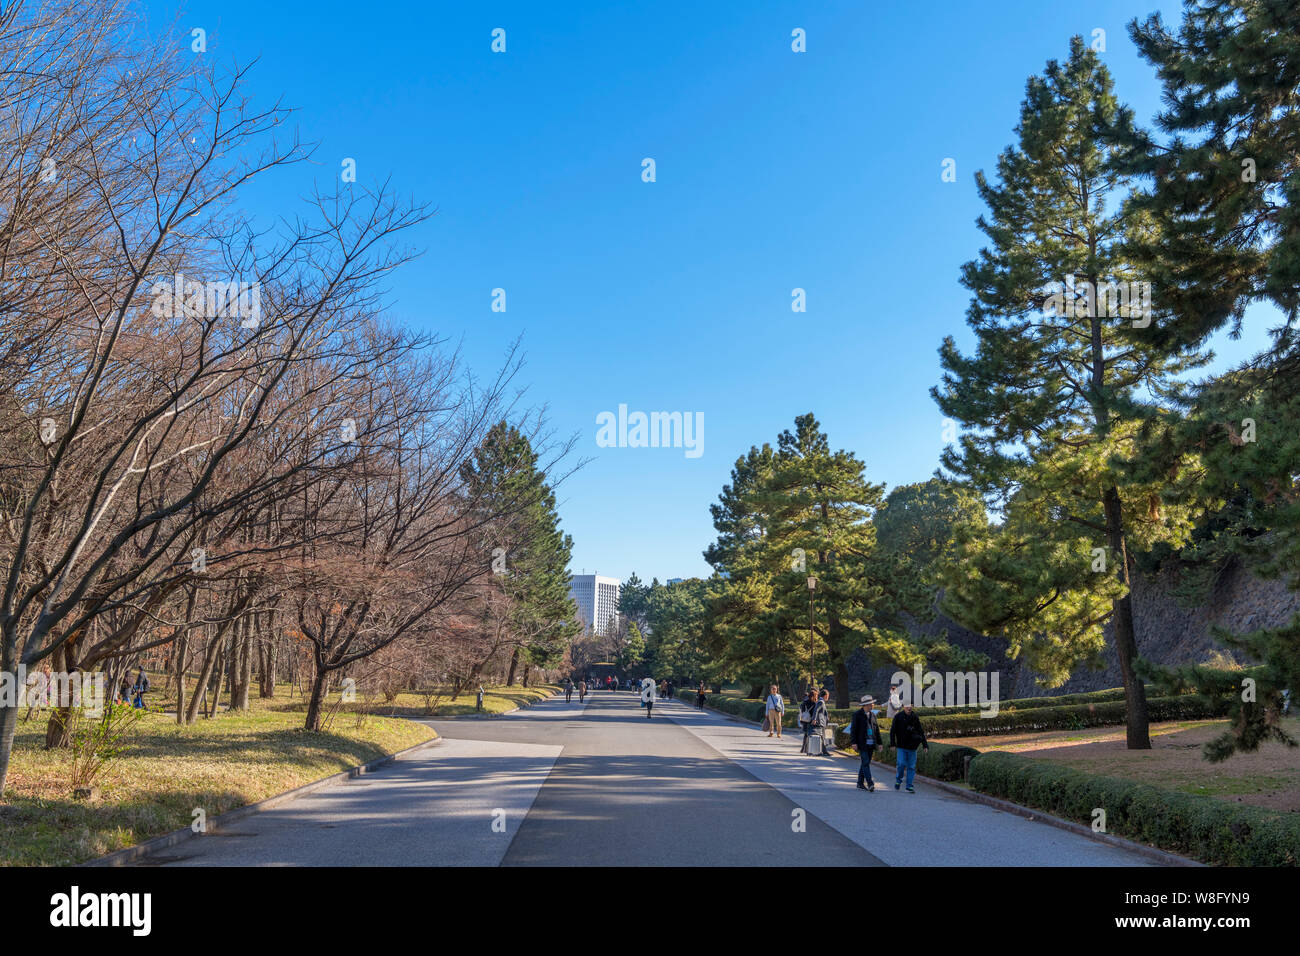 East Gardens of the Imperial Palace, Tokyo, Japan Stock Photo